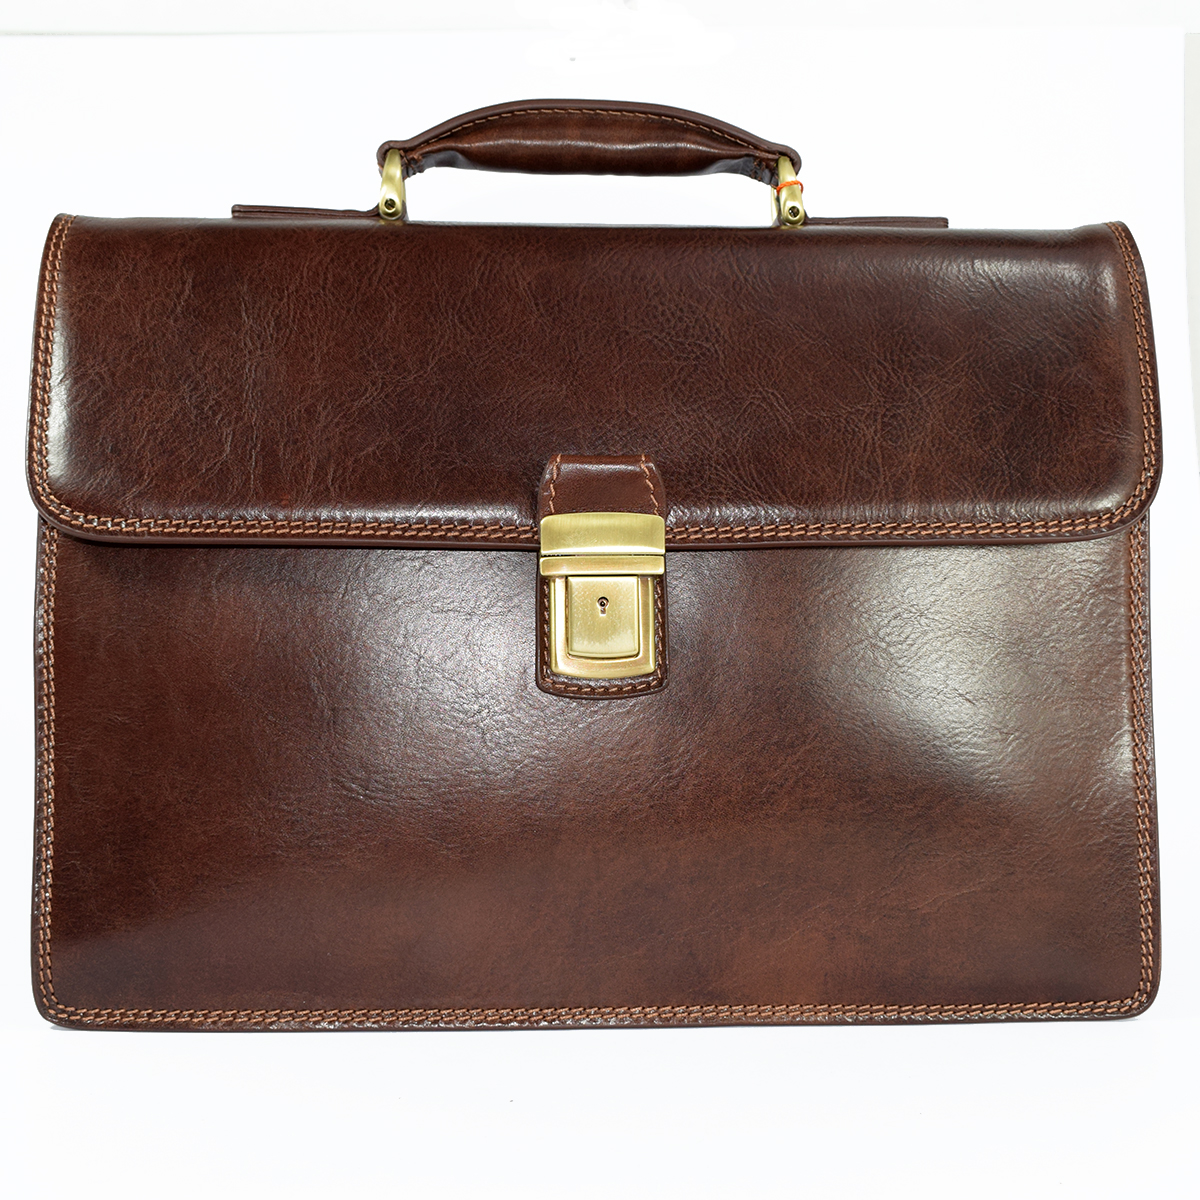 64025 PROFESSIONAL BRIEFCASE by Bottega Fiorentina